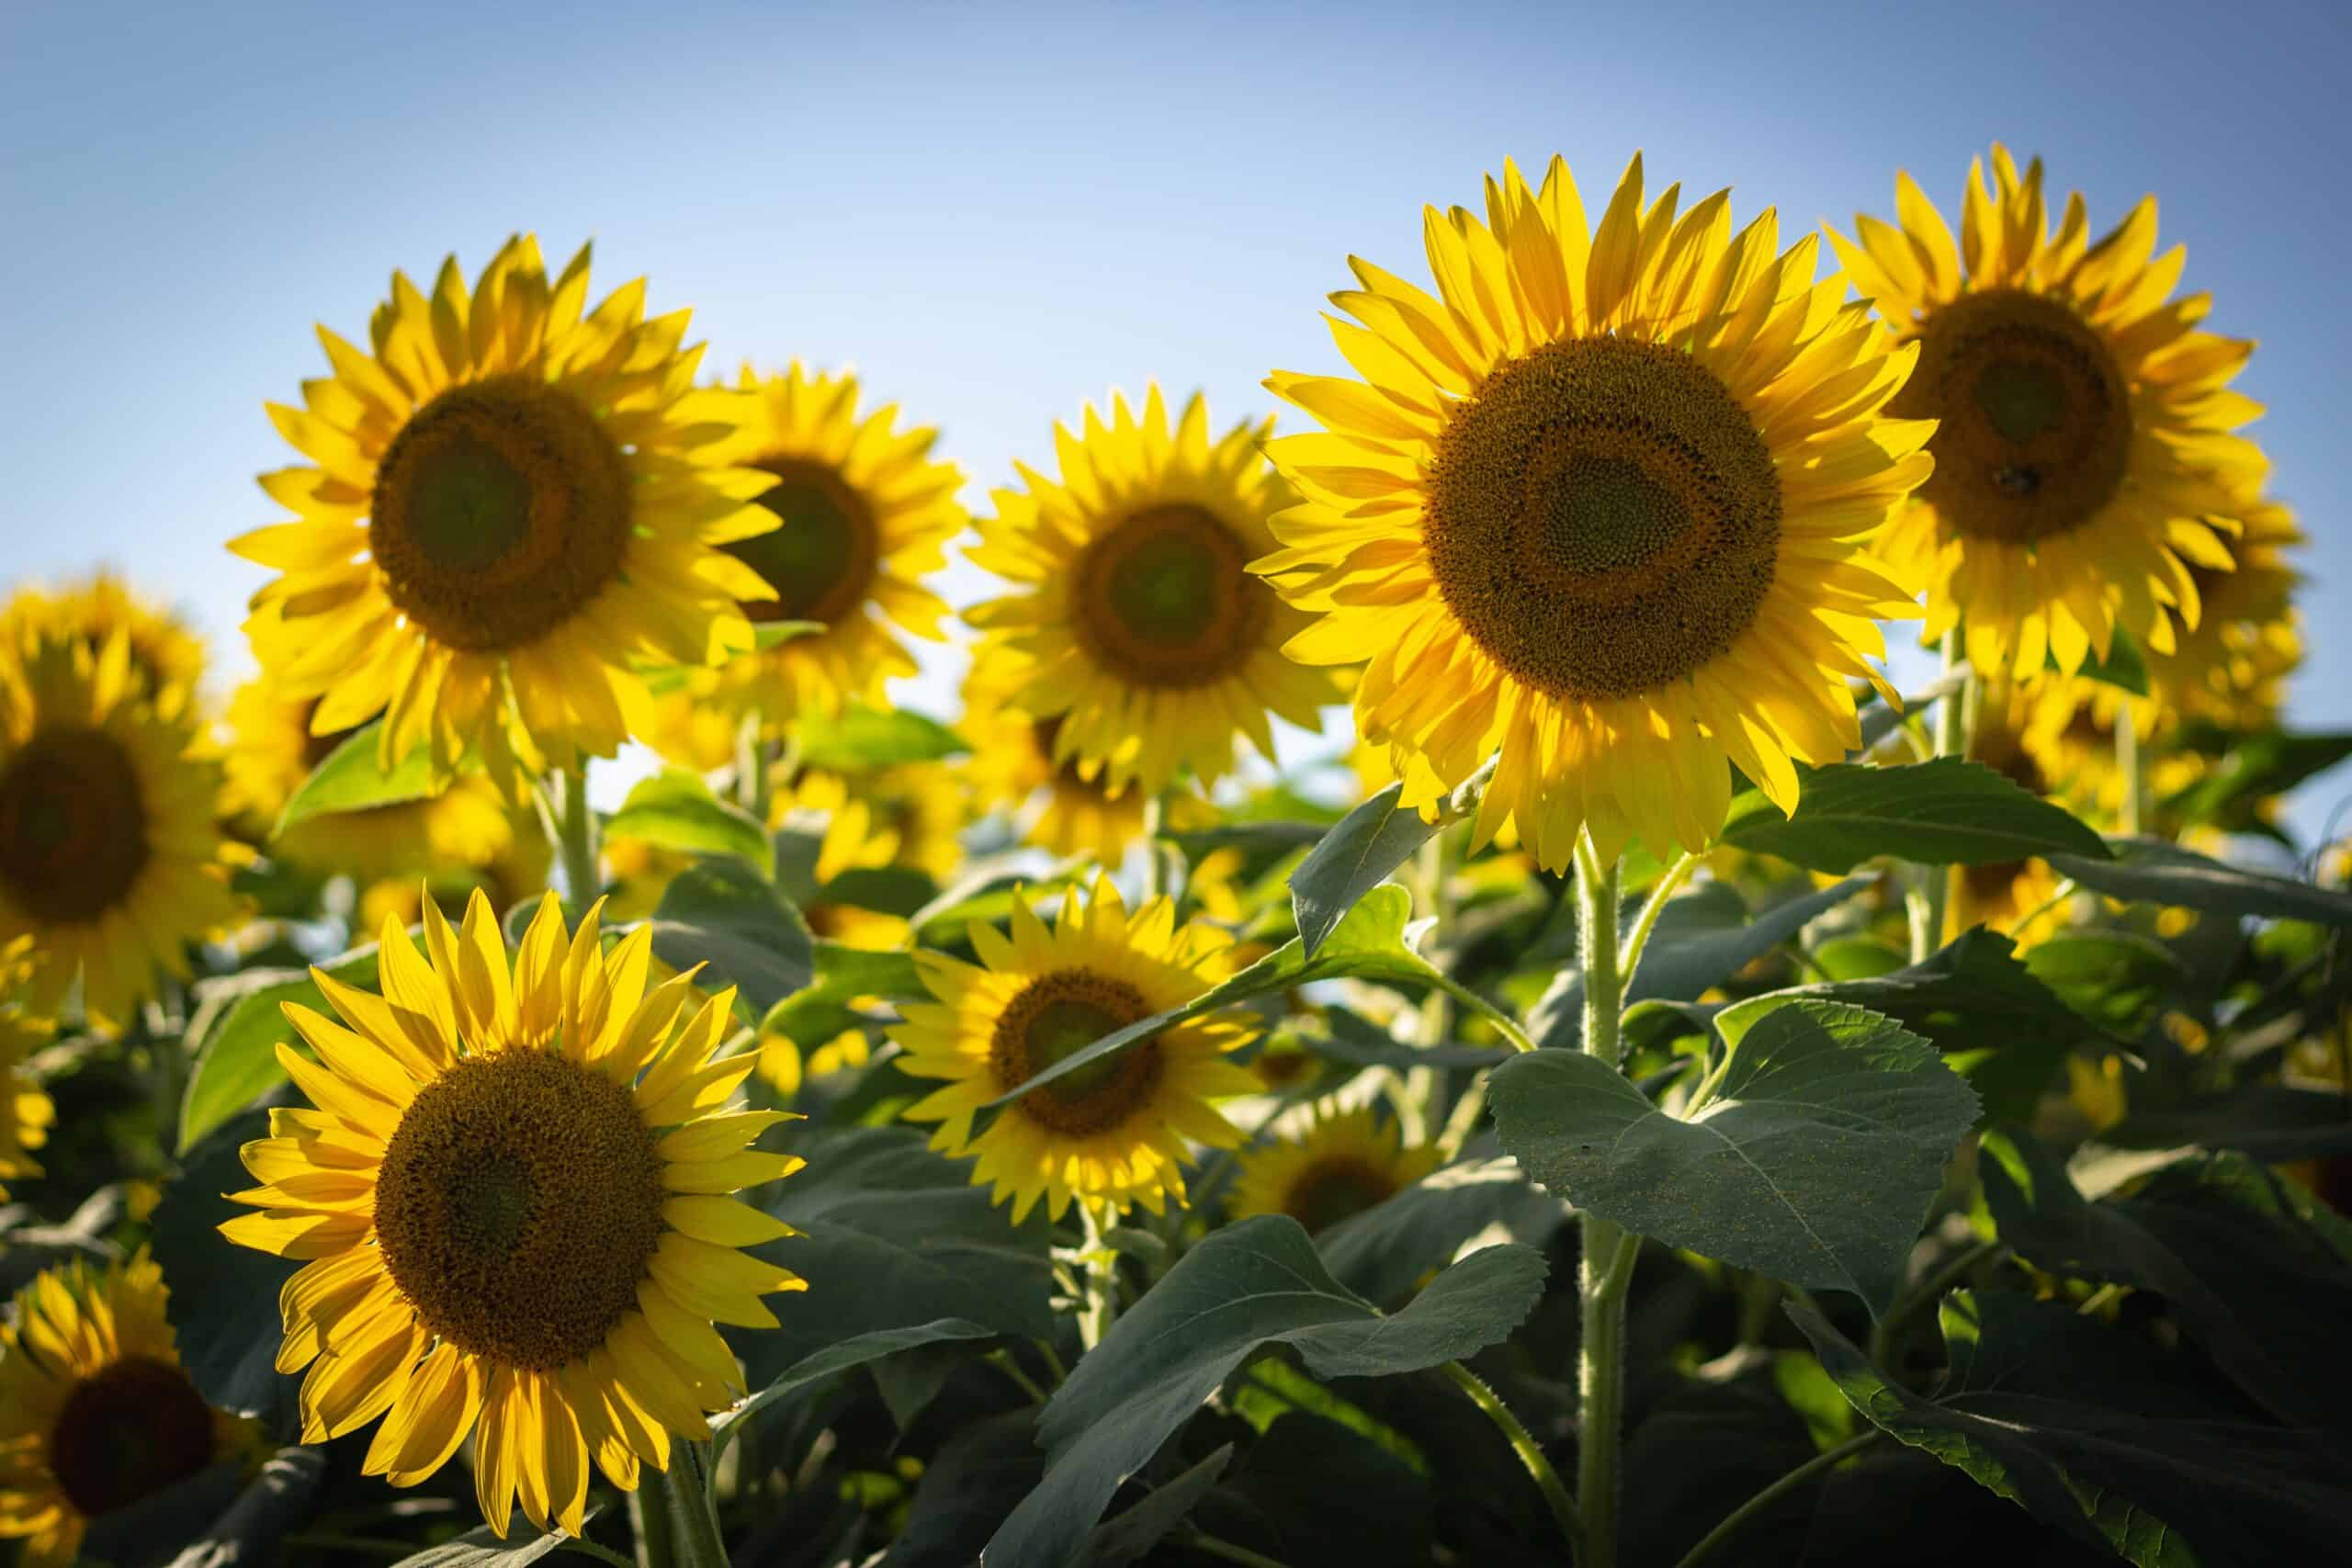 Best Sunflower Fields in California for Pictures - Ask for Adventure